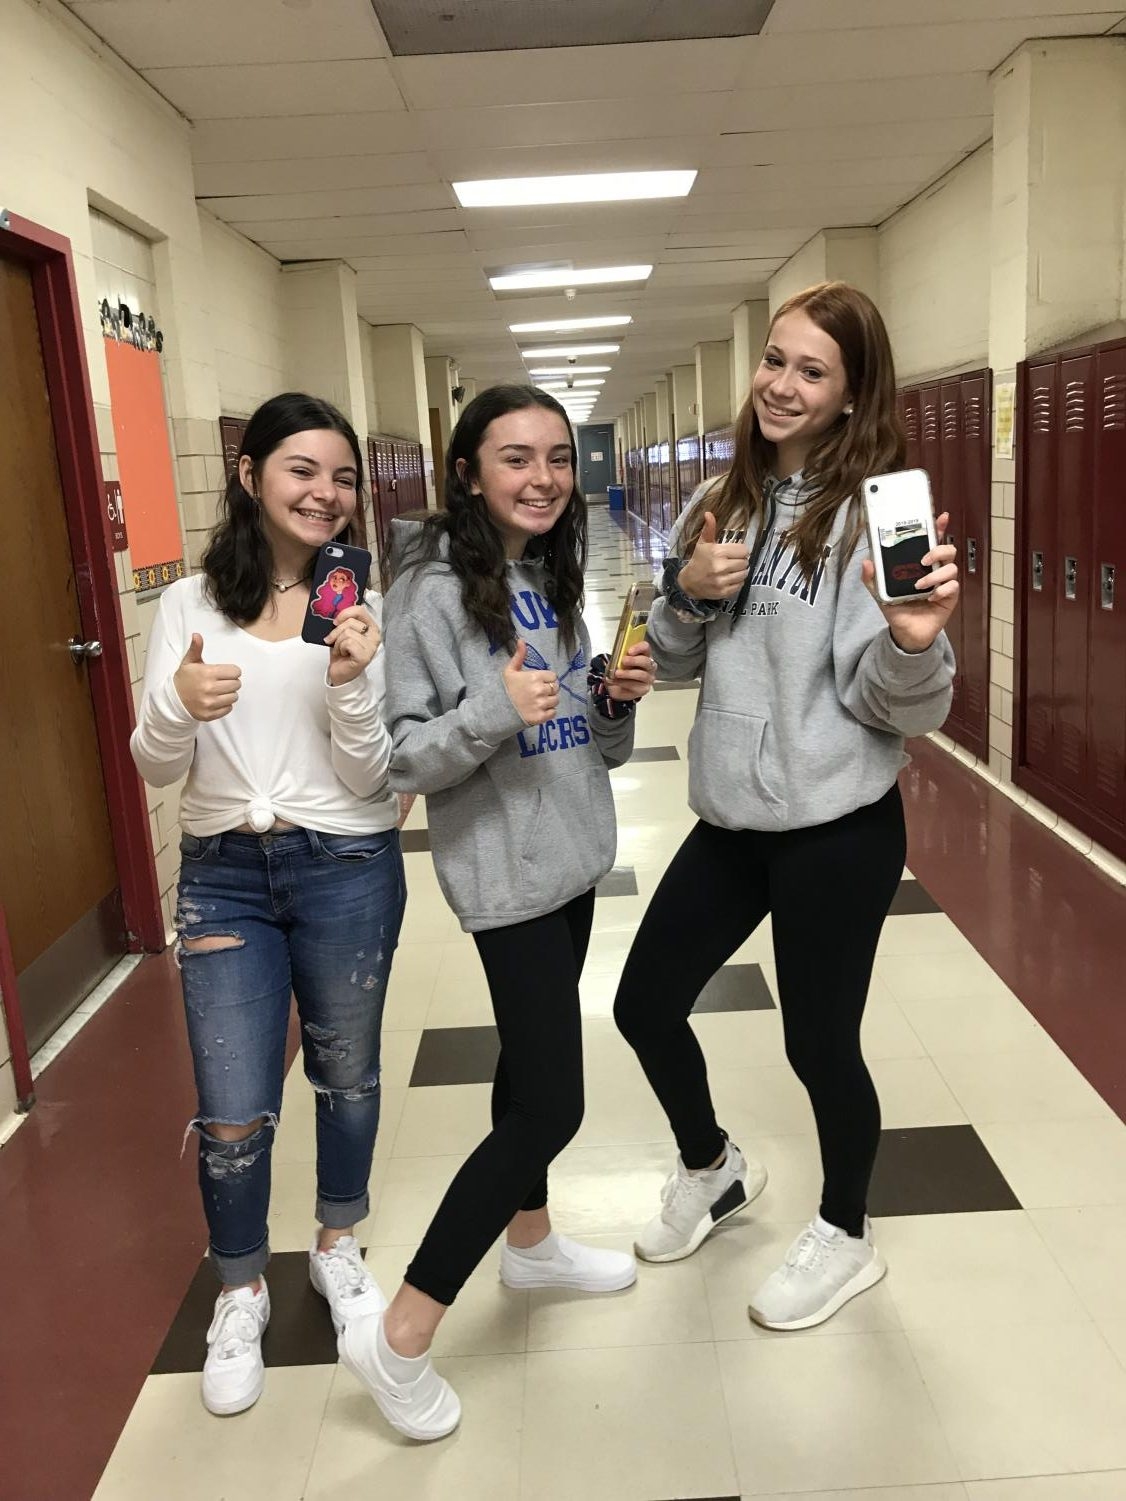 Freshmen Devyn Ivers, Abby McCarthy and Allie Eisenberg (left to right) pose with their smartphones. They all wish for teachers to incorporate technology into their classes more. Some of their favorite online classroom activities have been Kahoot and Quizlet Live.